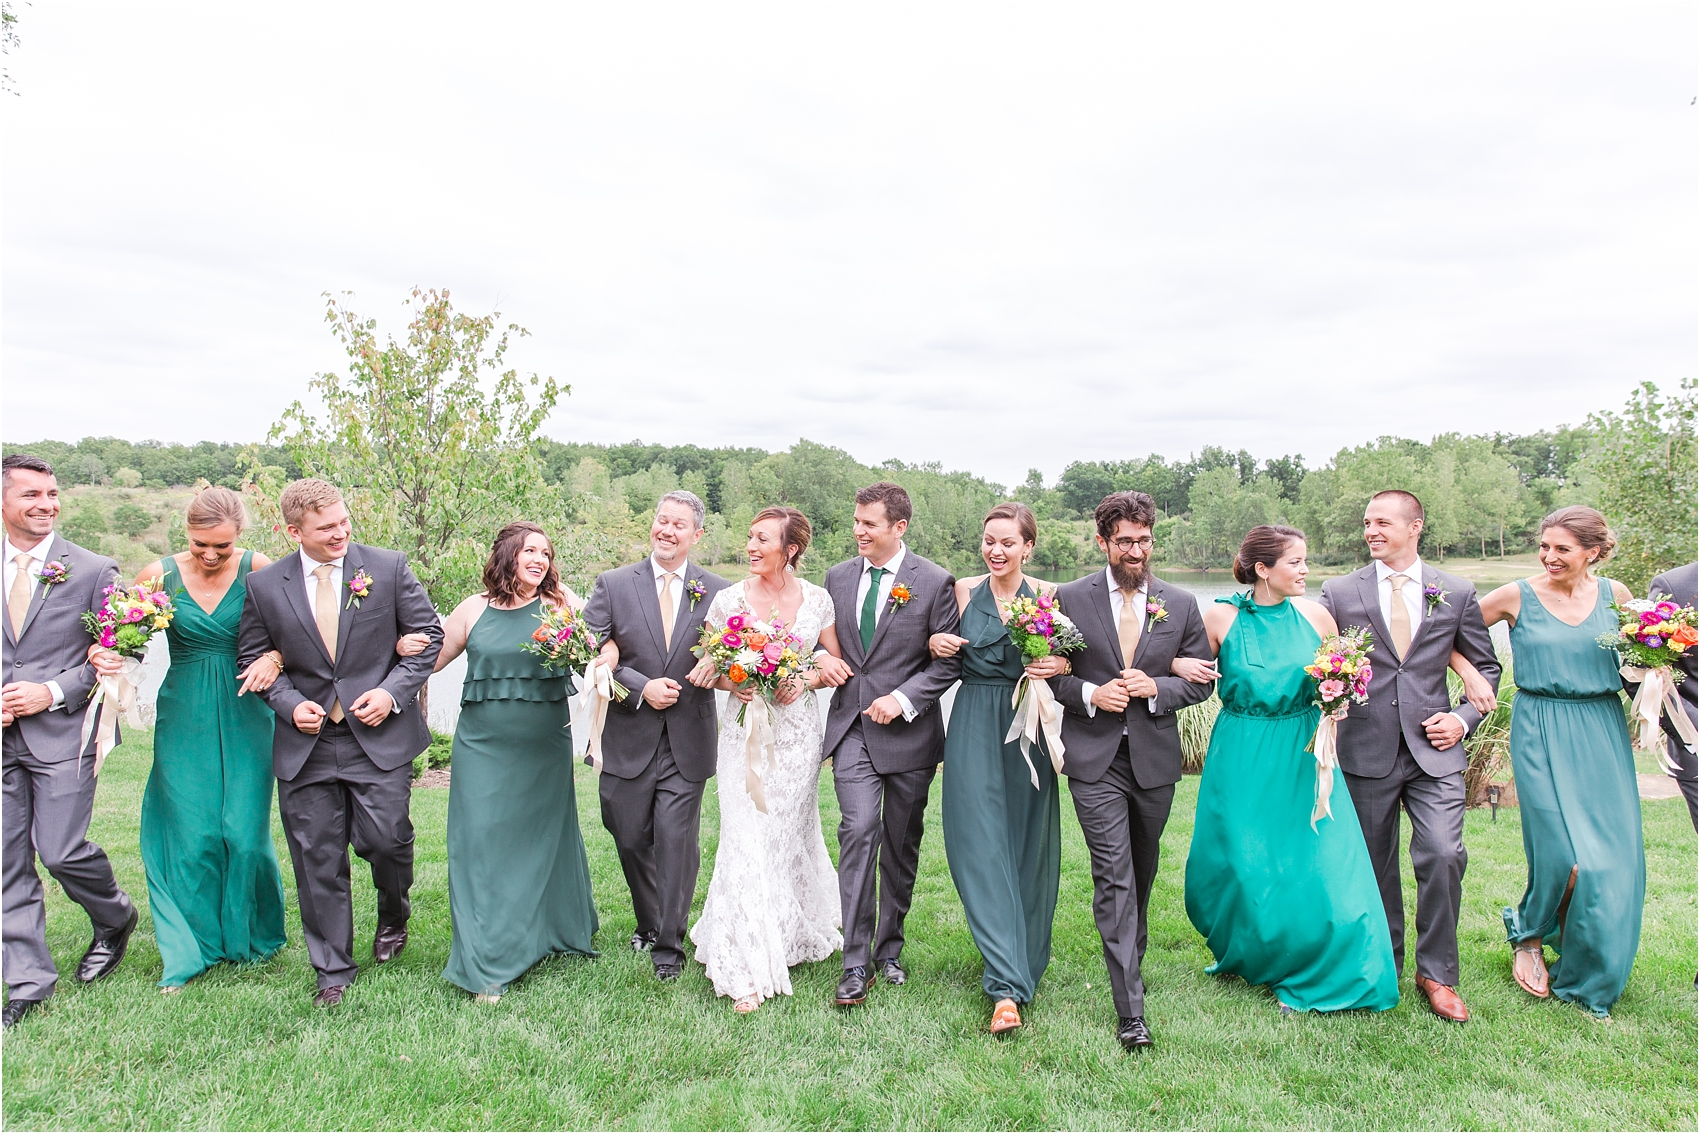 romantic-intimate-backyard-wedding-photos-at-private-estate-in-ann-arbor-mi-by-courtney-carolyn-photography_0068.jpg